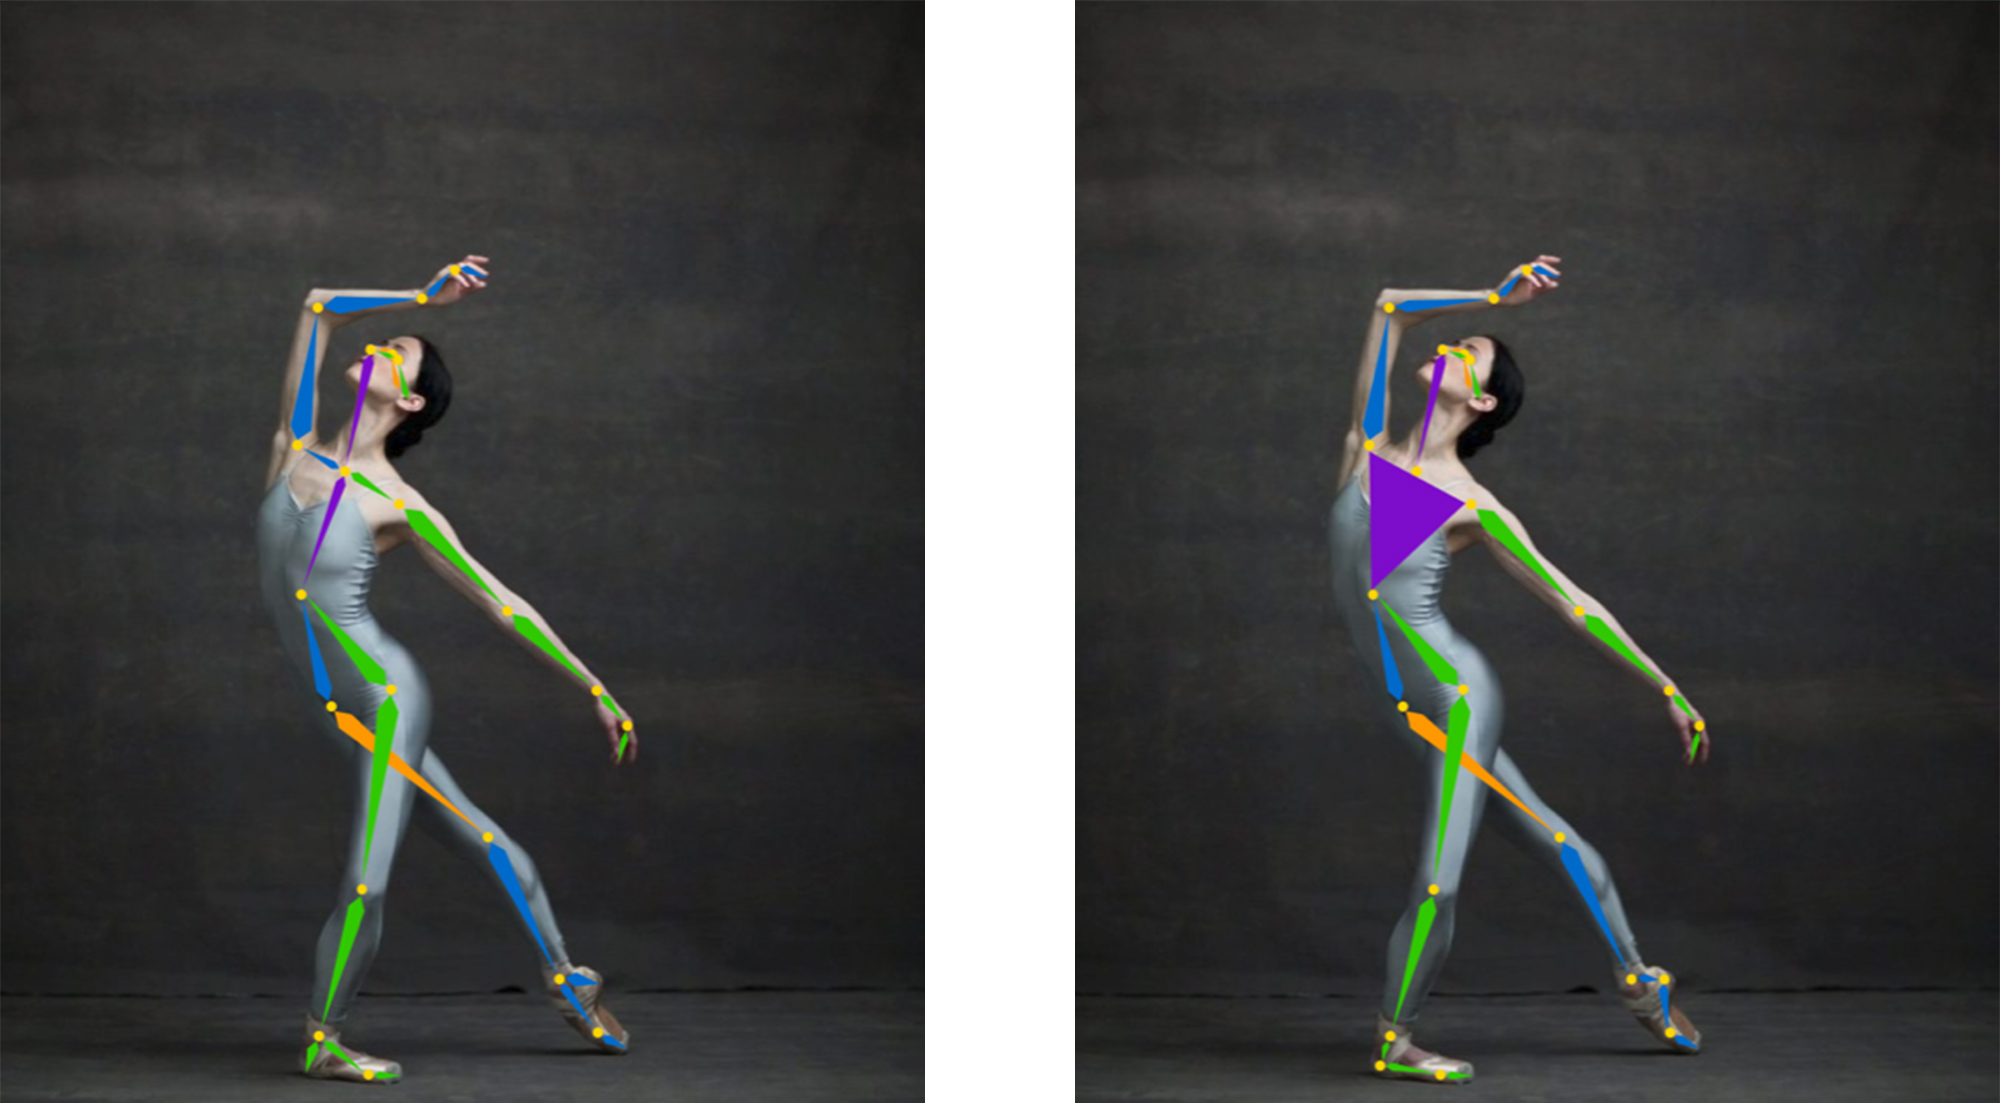 What: Image of an app that uses AI to teach ballet.